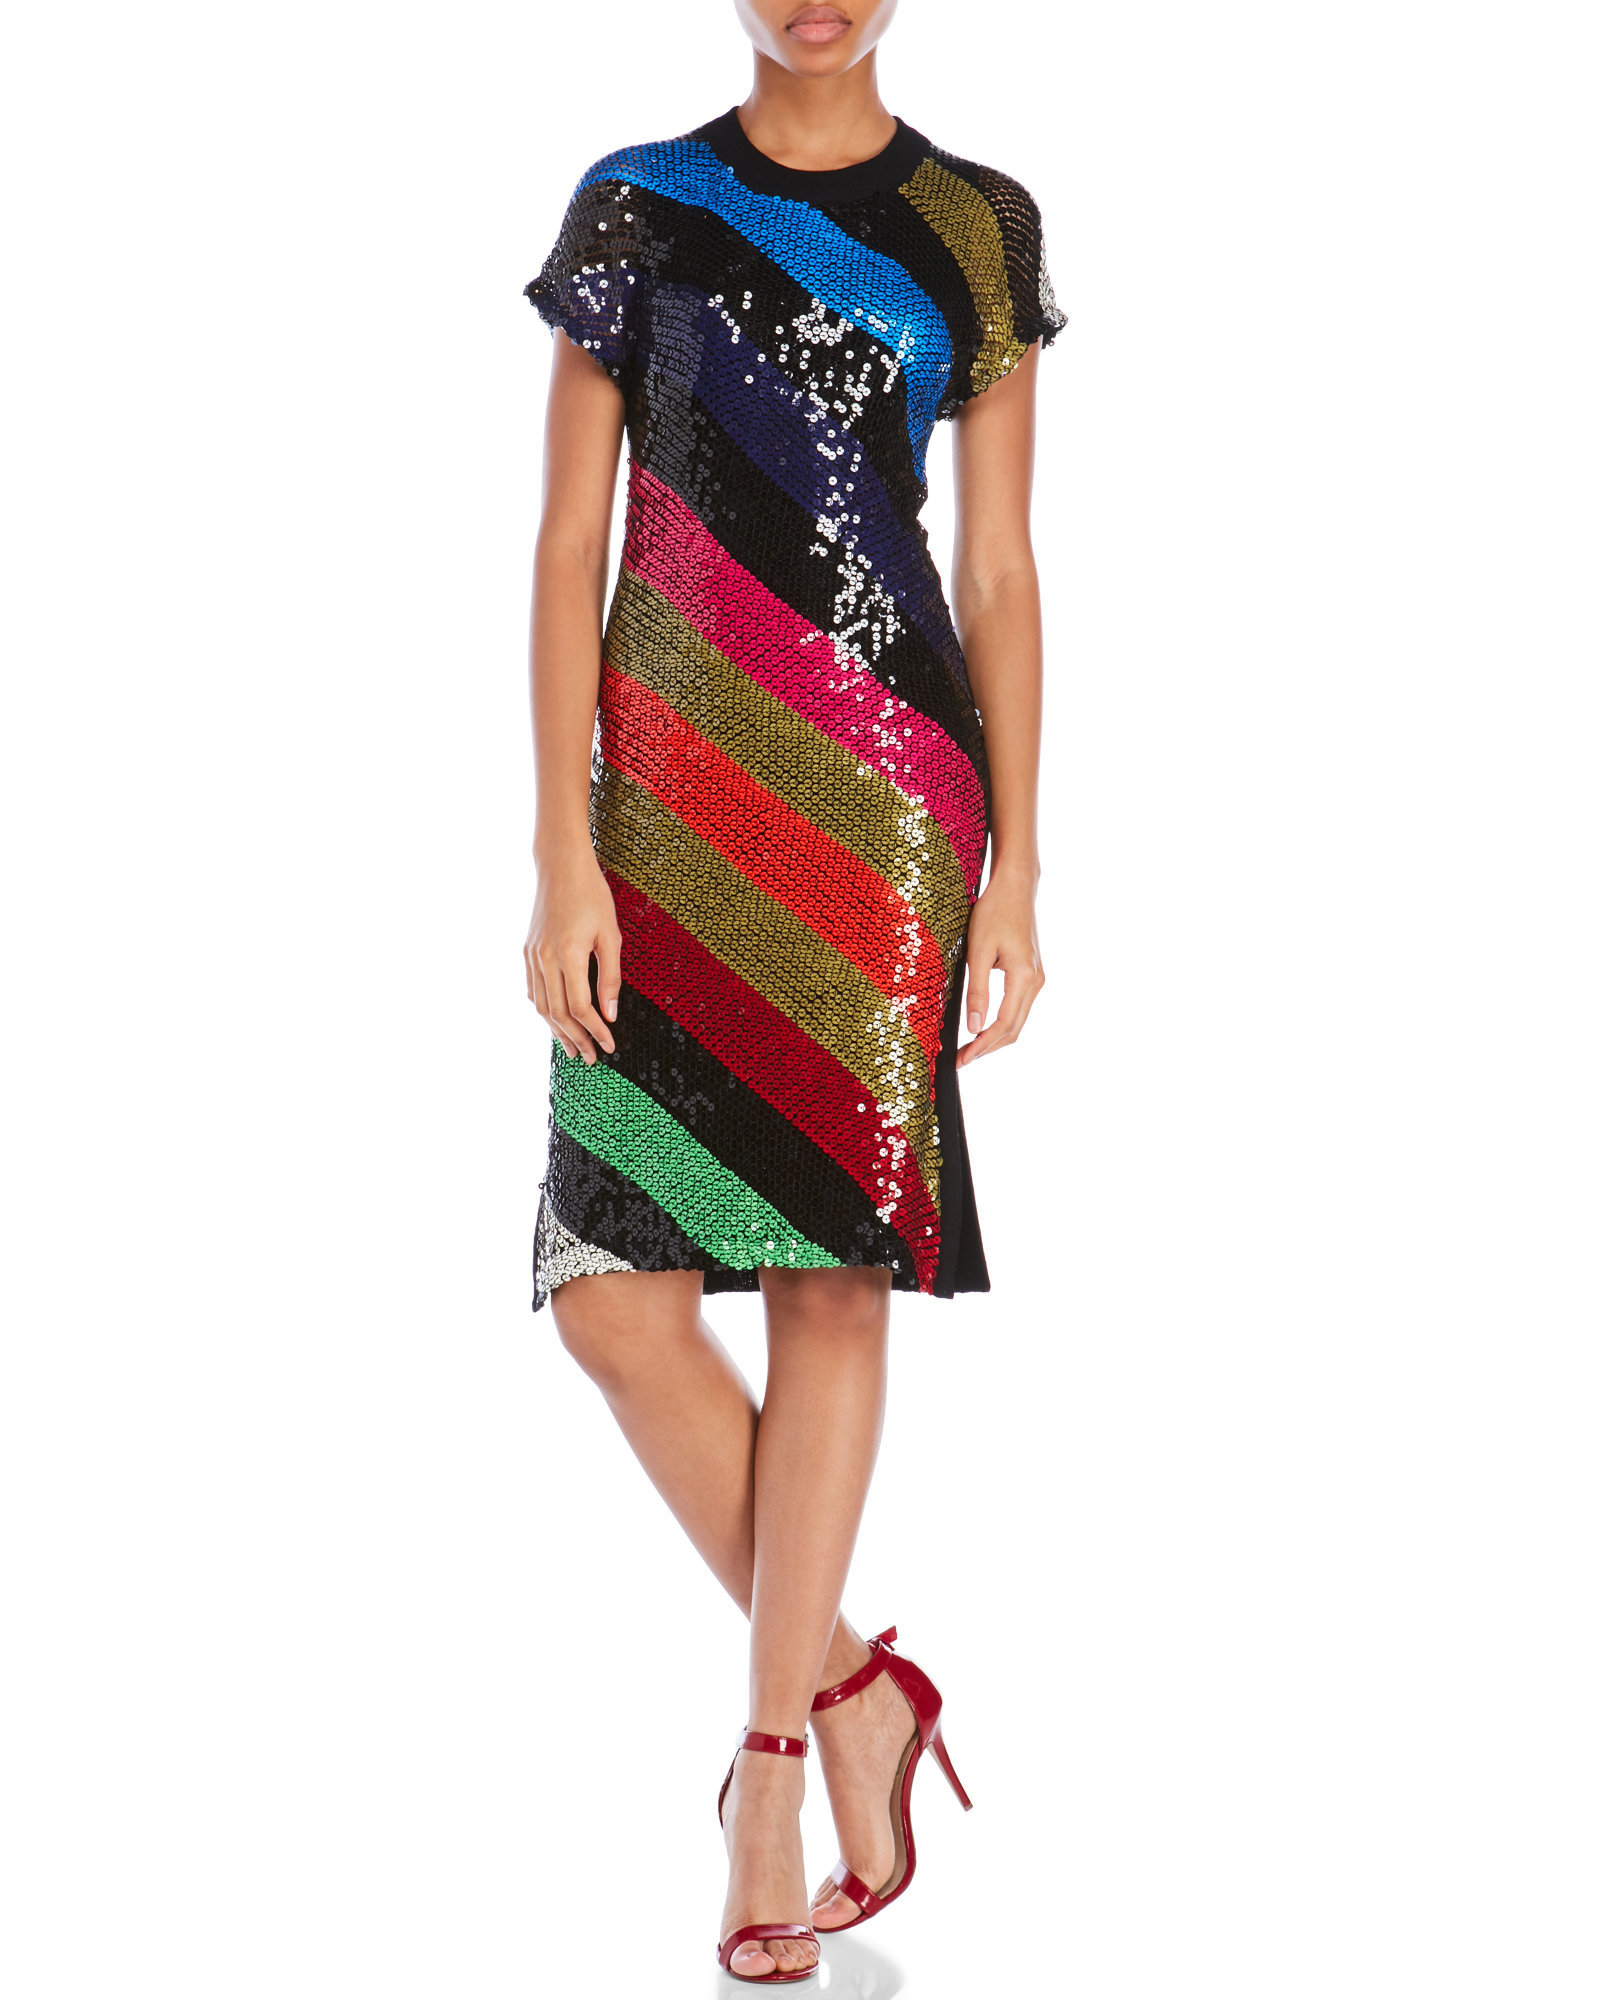 SEQUIN-DRESS-FASHION-PICK-CENTURY-21-BEAUTY-AND-THE-BEAT-BLOG